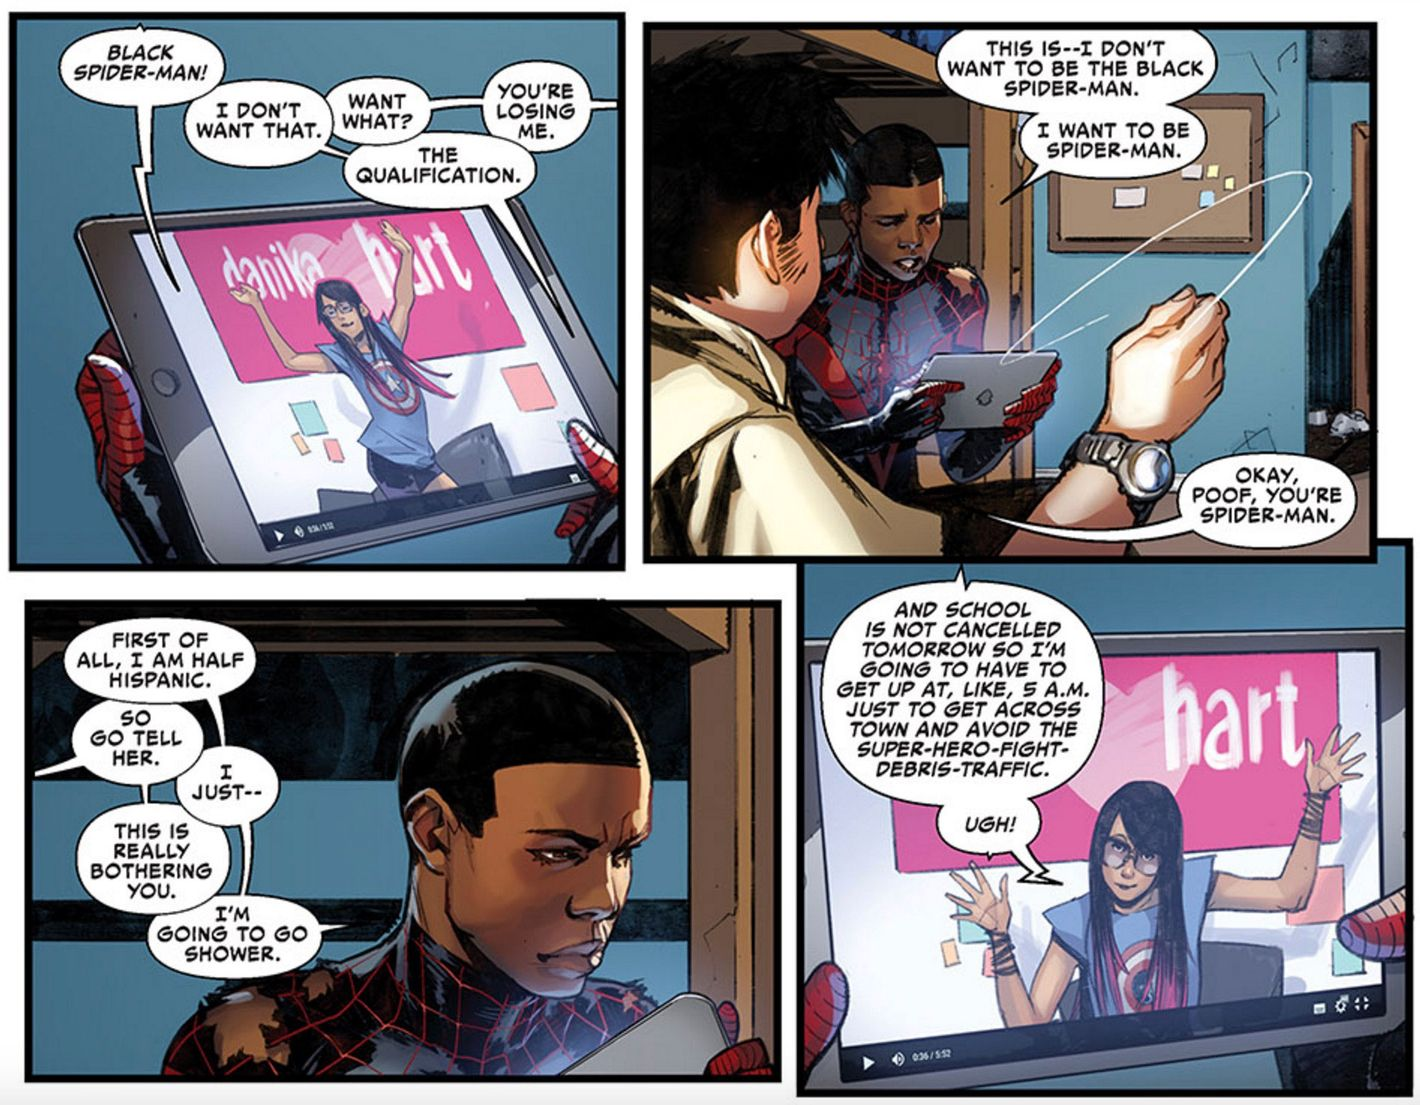 Miles Morales of 'Into the Spider-Verse': The Race Problem